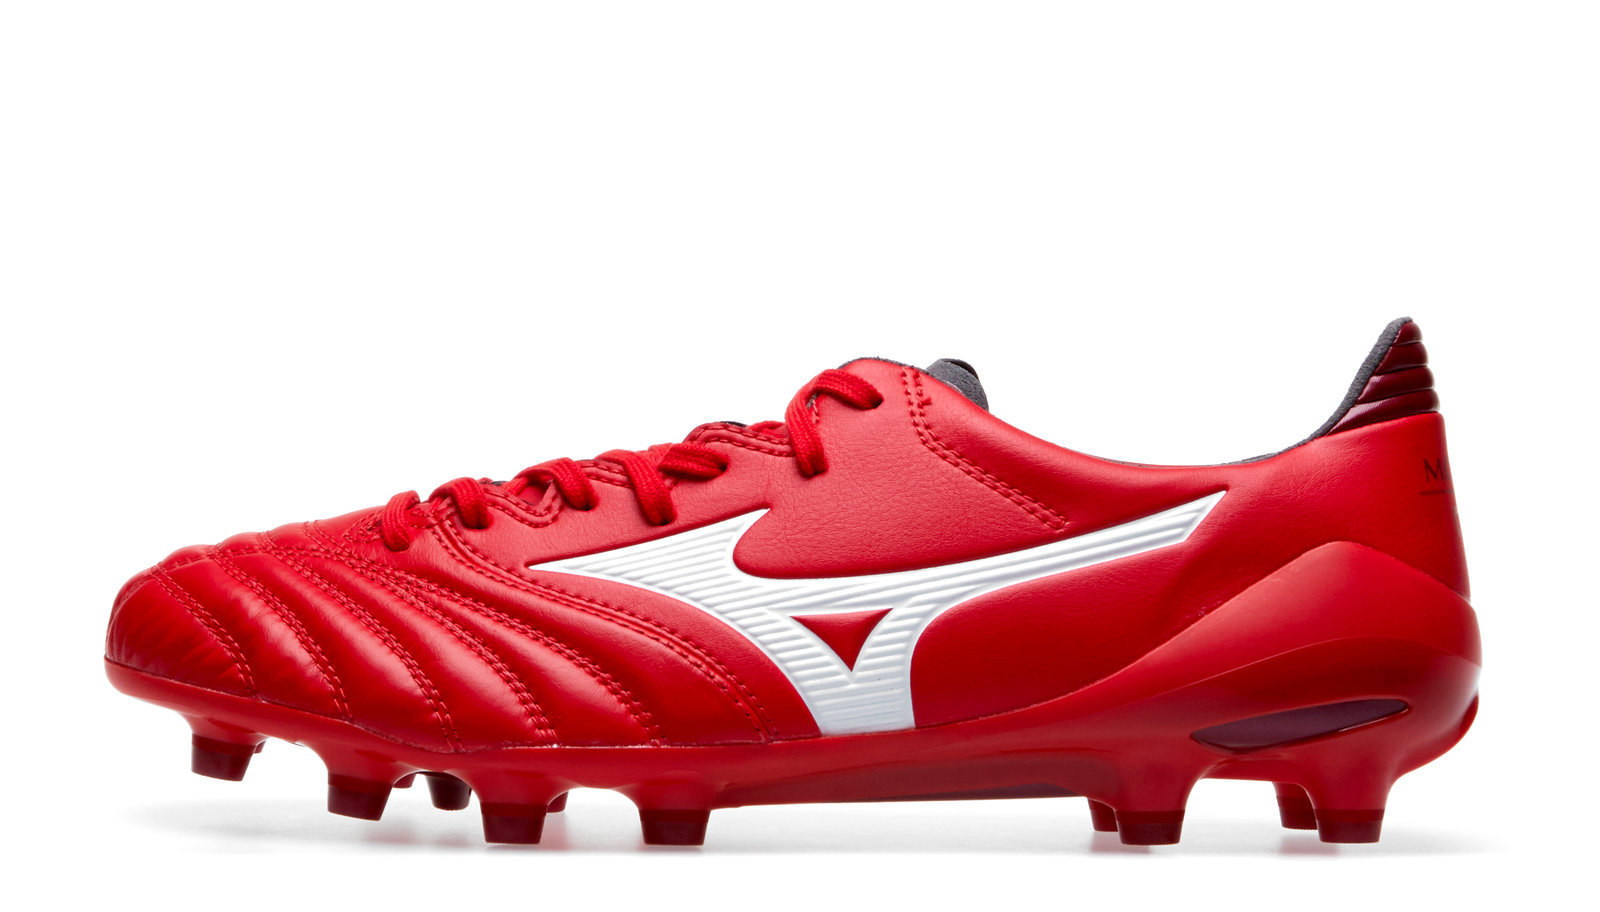 8fc4450fb Mizuno Mens Morelia Neo II MD Firm Ground Football Boots Stud Trainers Shoes  Red